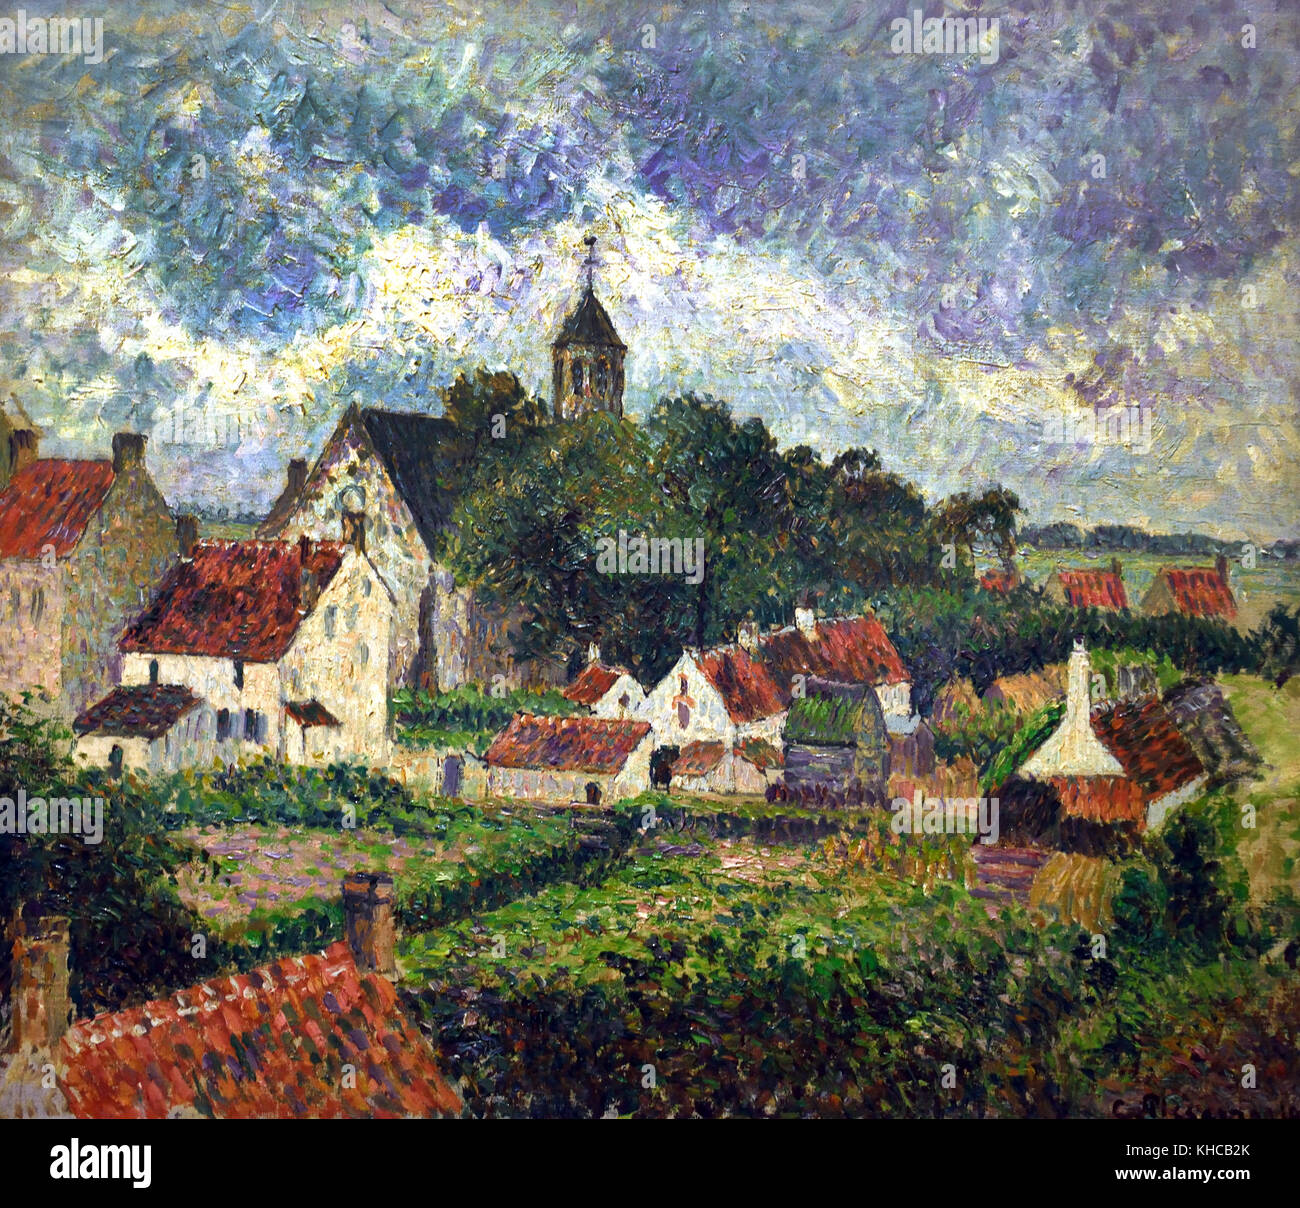 Le Village de Knocke  1894 Camille Pissarro 1830 - 1905 France French - Stock Image